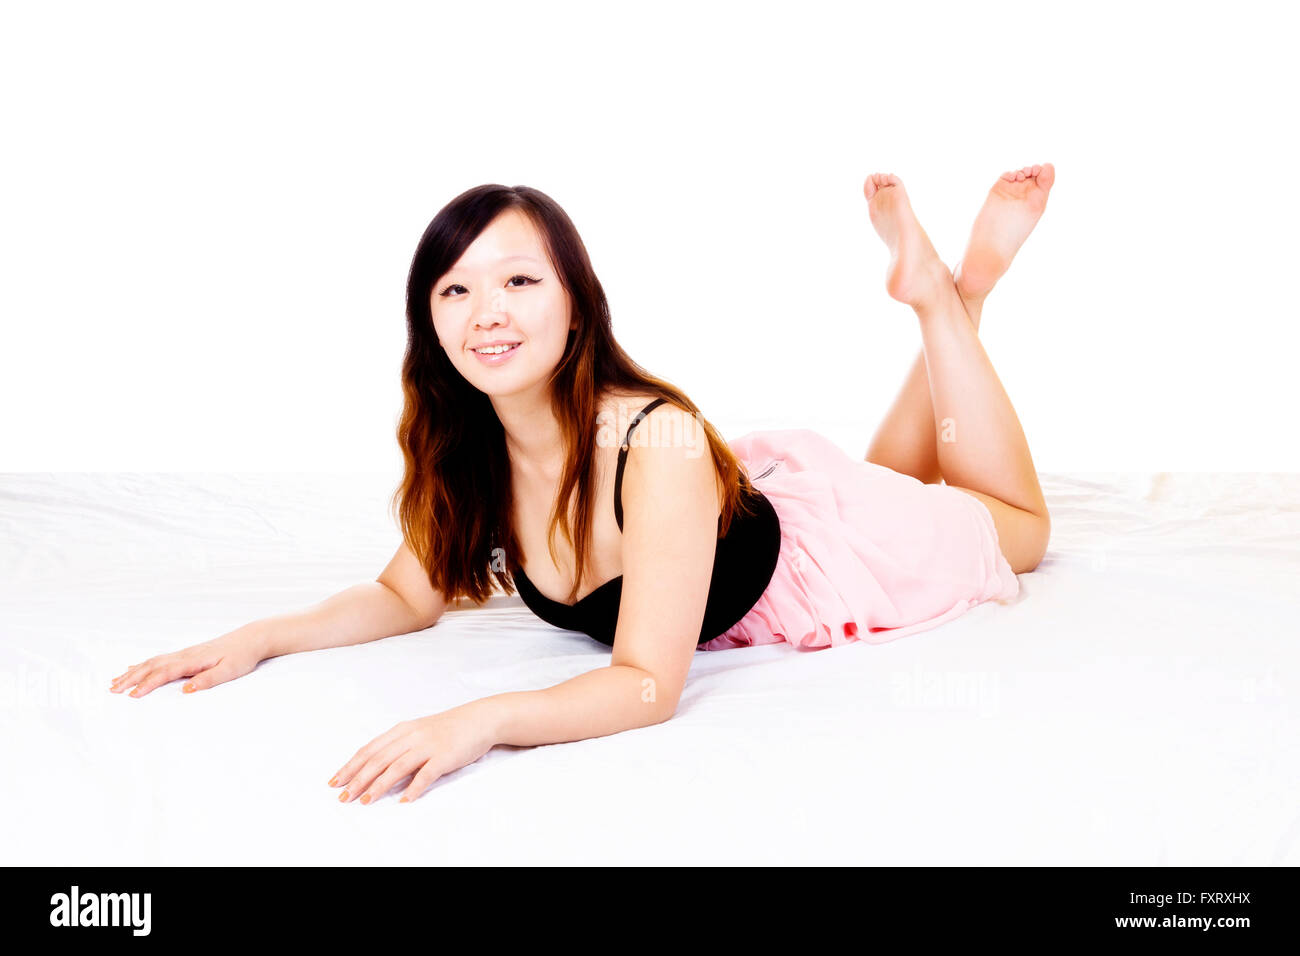 0dd8e2120 Bare Feet Young Asian Woman Stock Photos   Bare Feet Young Asian ...